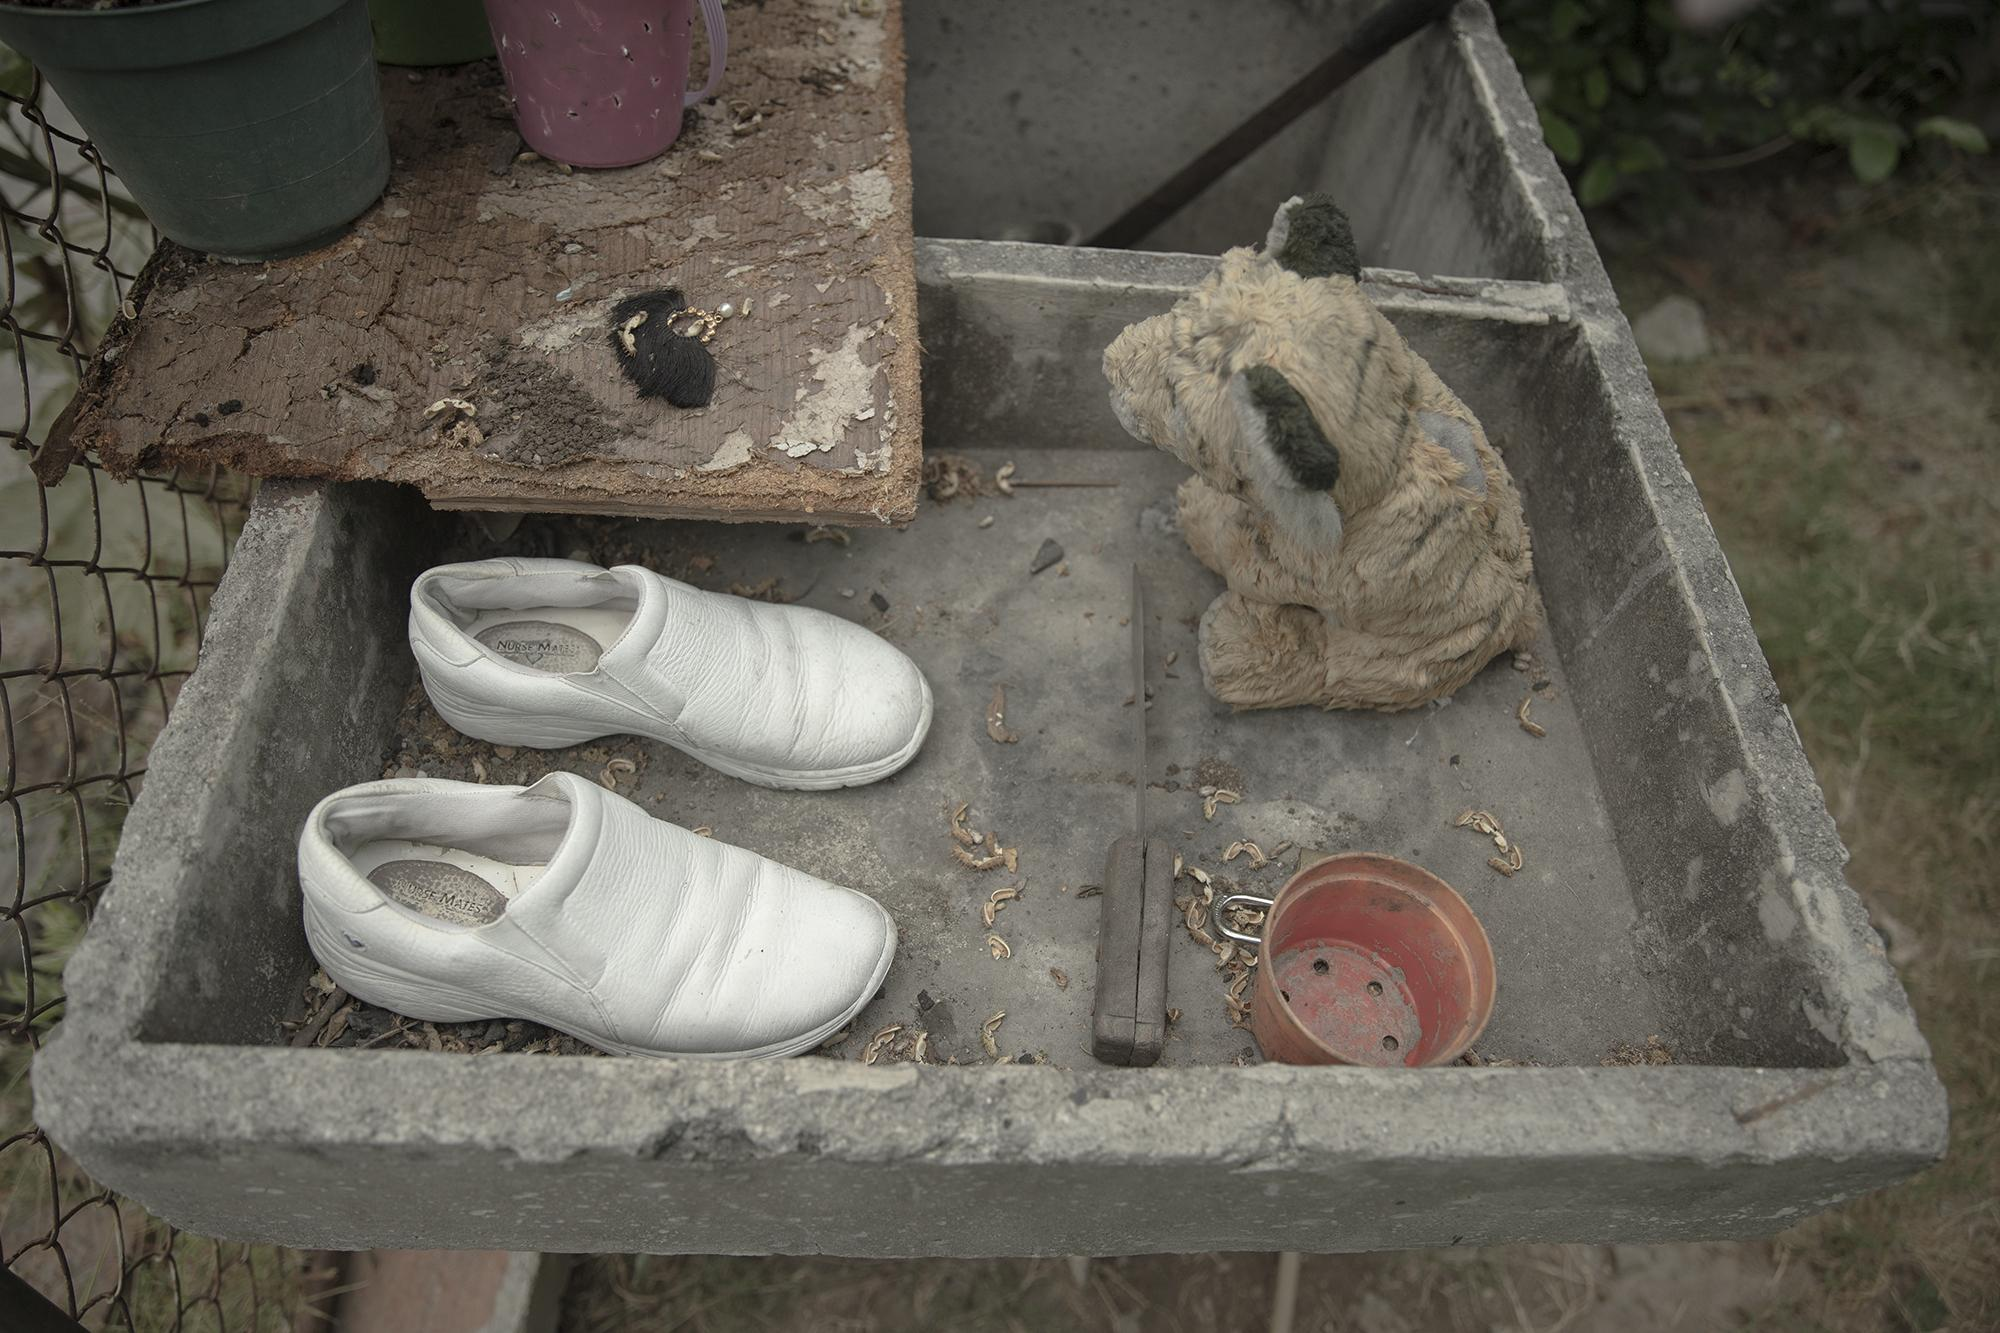 A nurse leaves her shoes outside her home. Under the coronavirus crisis, she's been instructed to bleach her shoes, but the lack of running water renders the task impossible. Photo: Carlos Barrera/El Faro